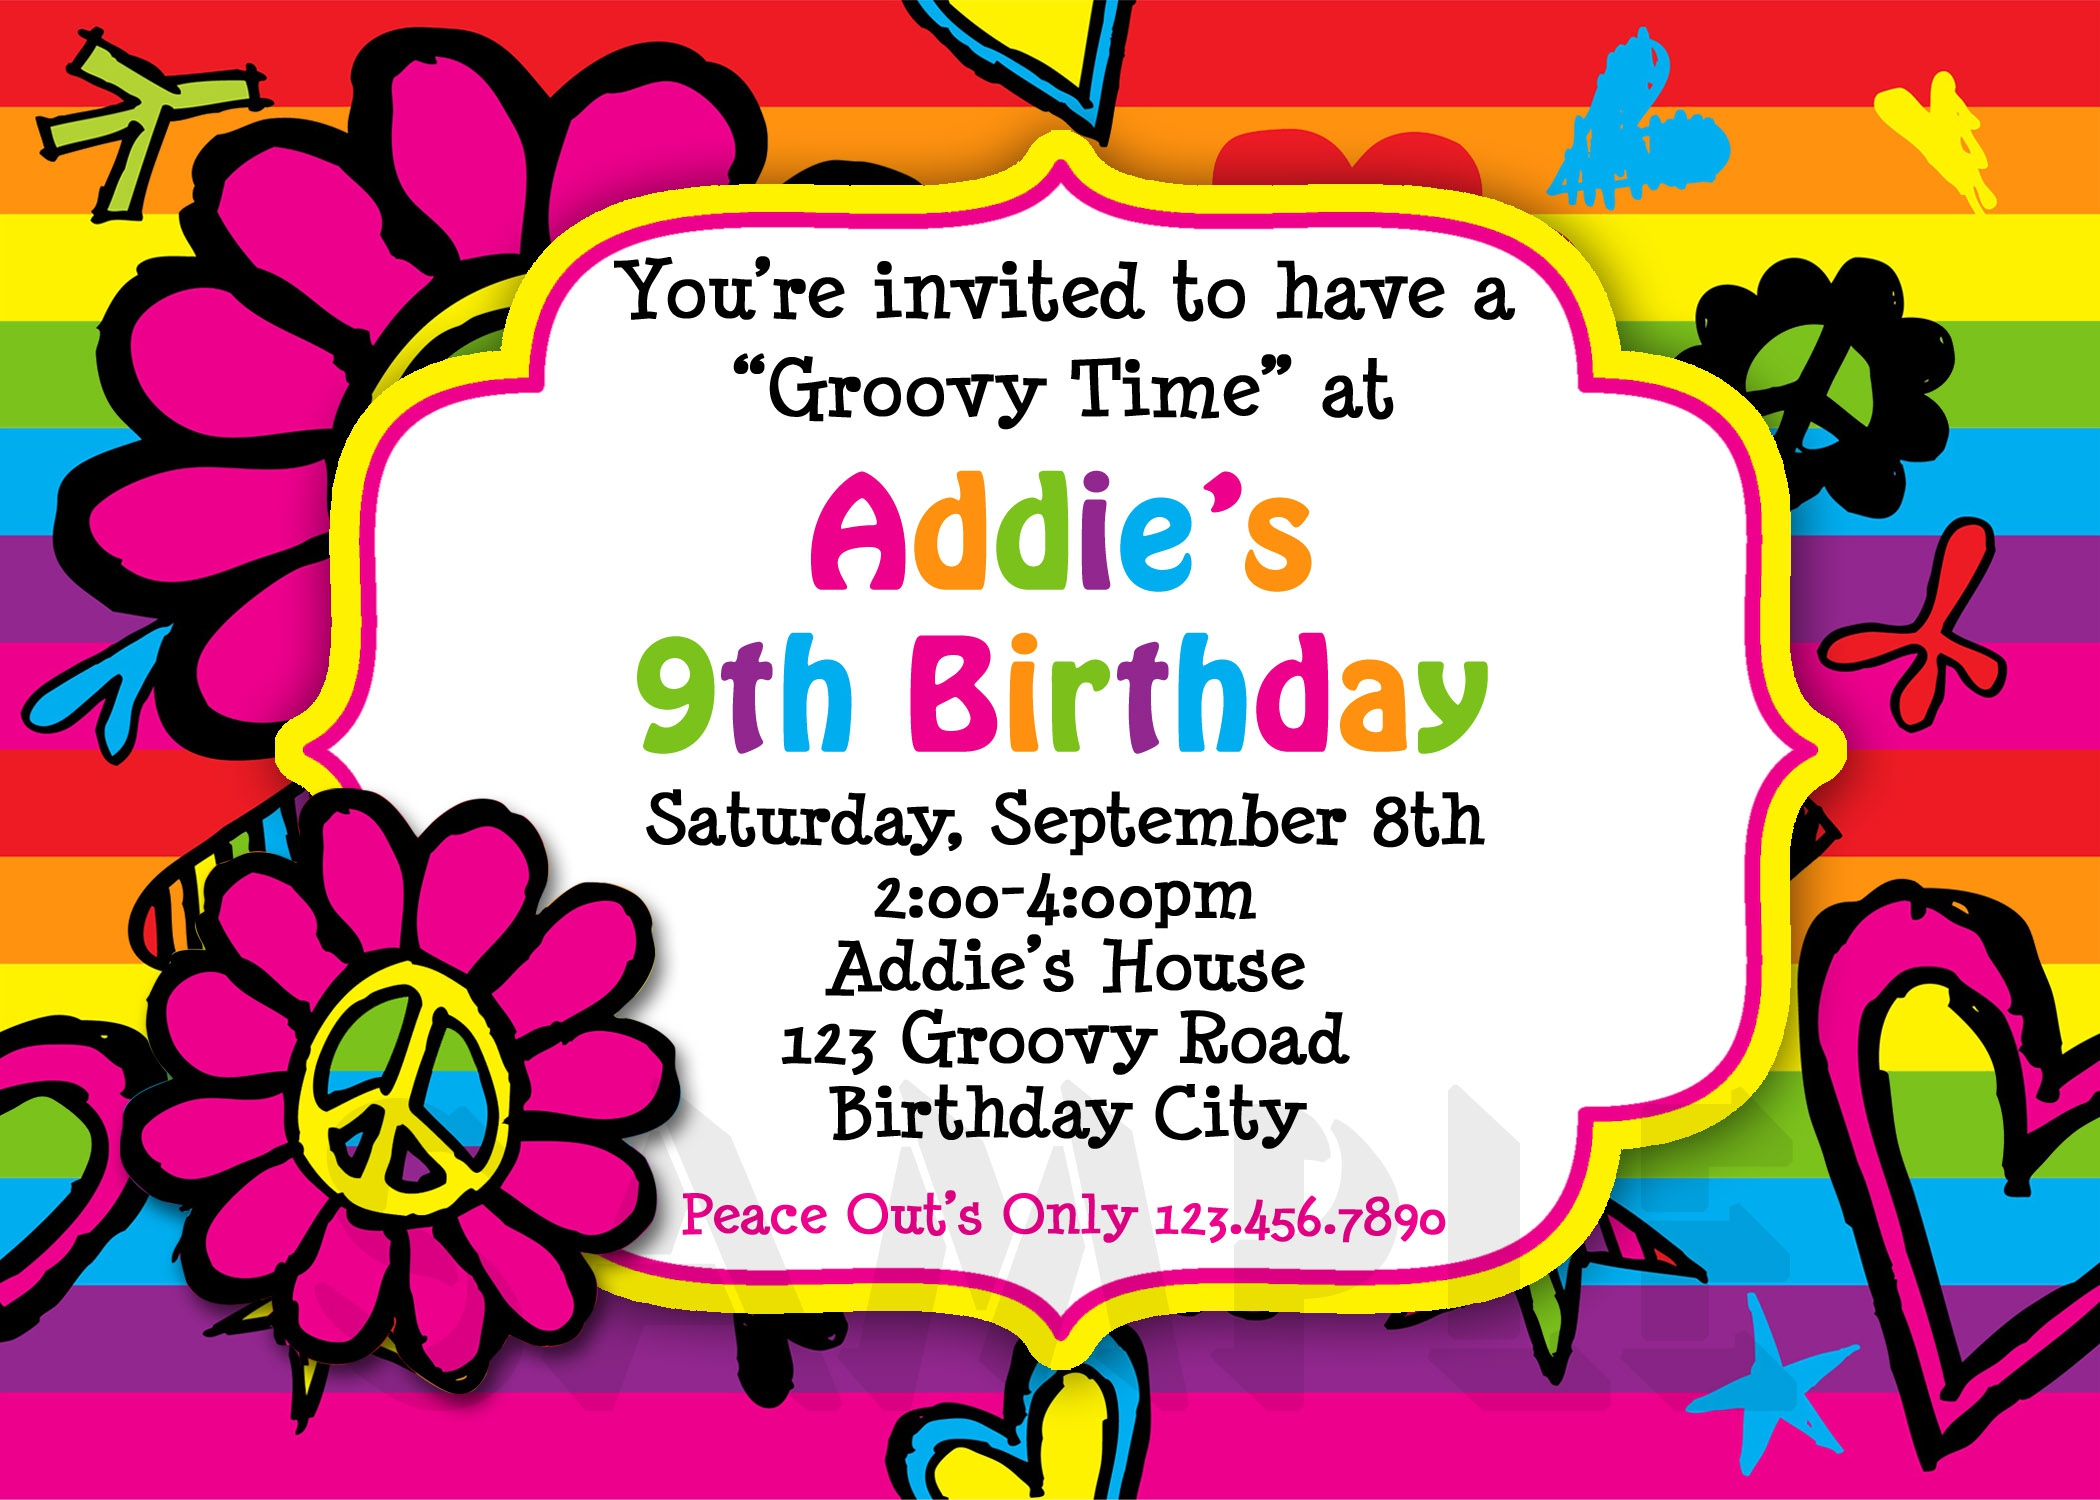 10 year old birthday invitations ; carnival-birthday-invitations-unique-10-year-old-birthday-party-invitations-free-cogimbo-of-carnival-birthday-invitations